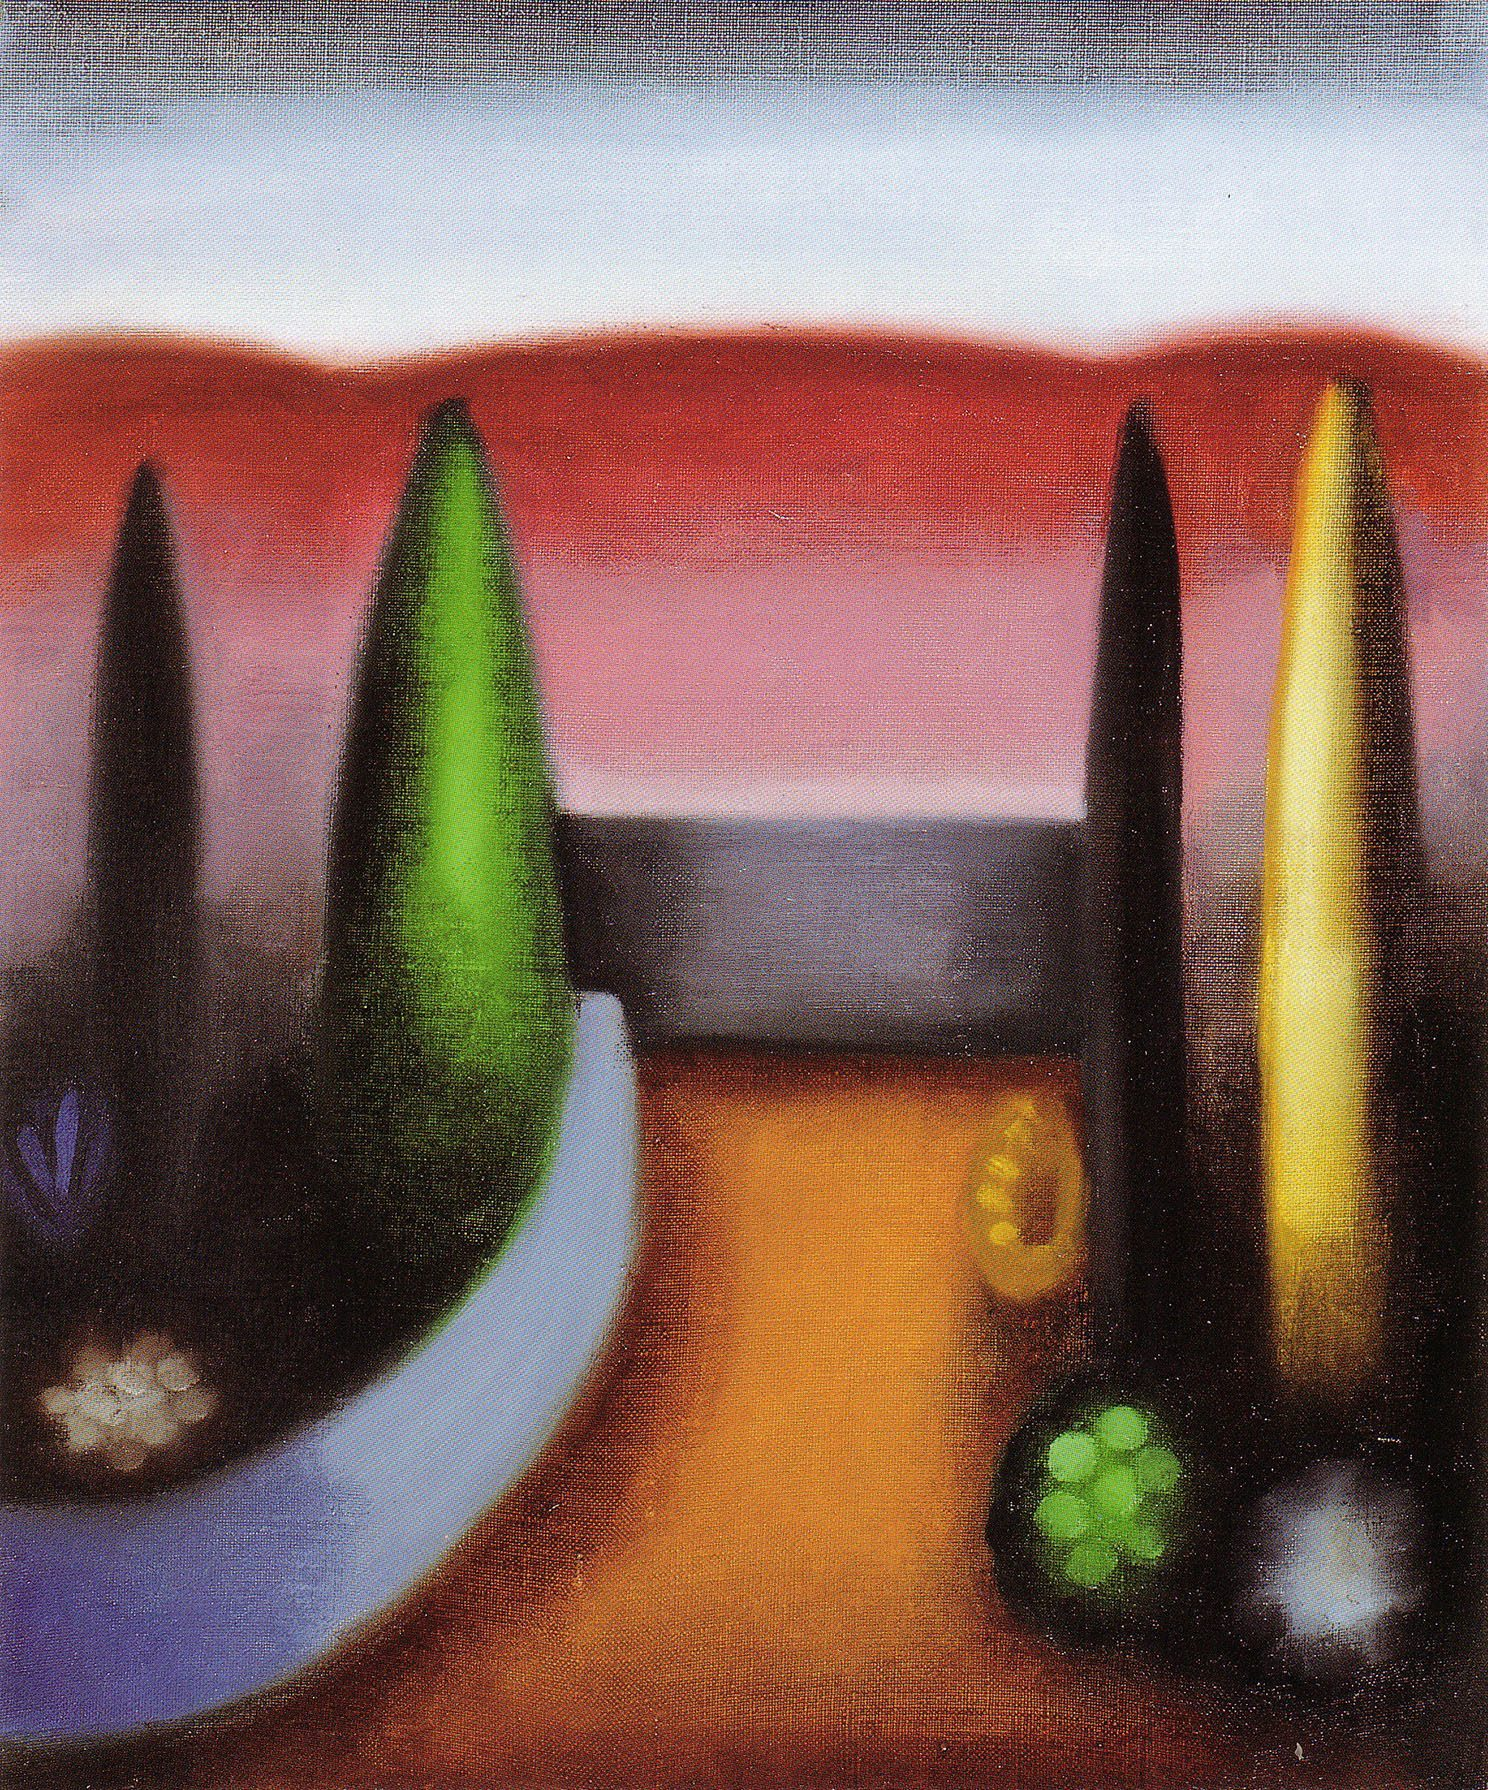 Landscape, 1995, oil on canvas, cm 38 x 46